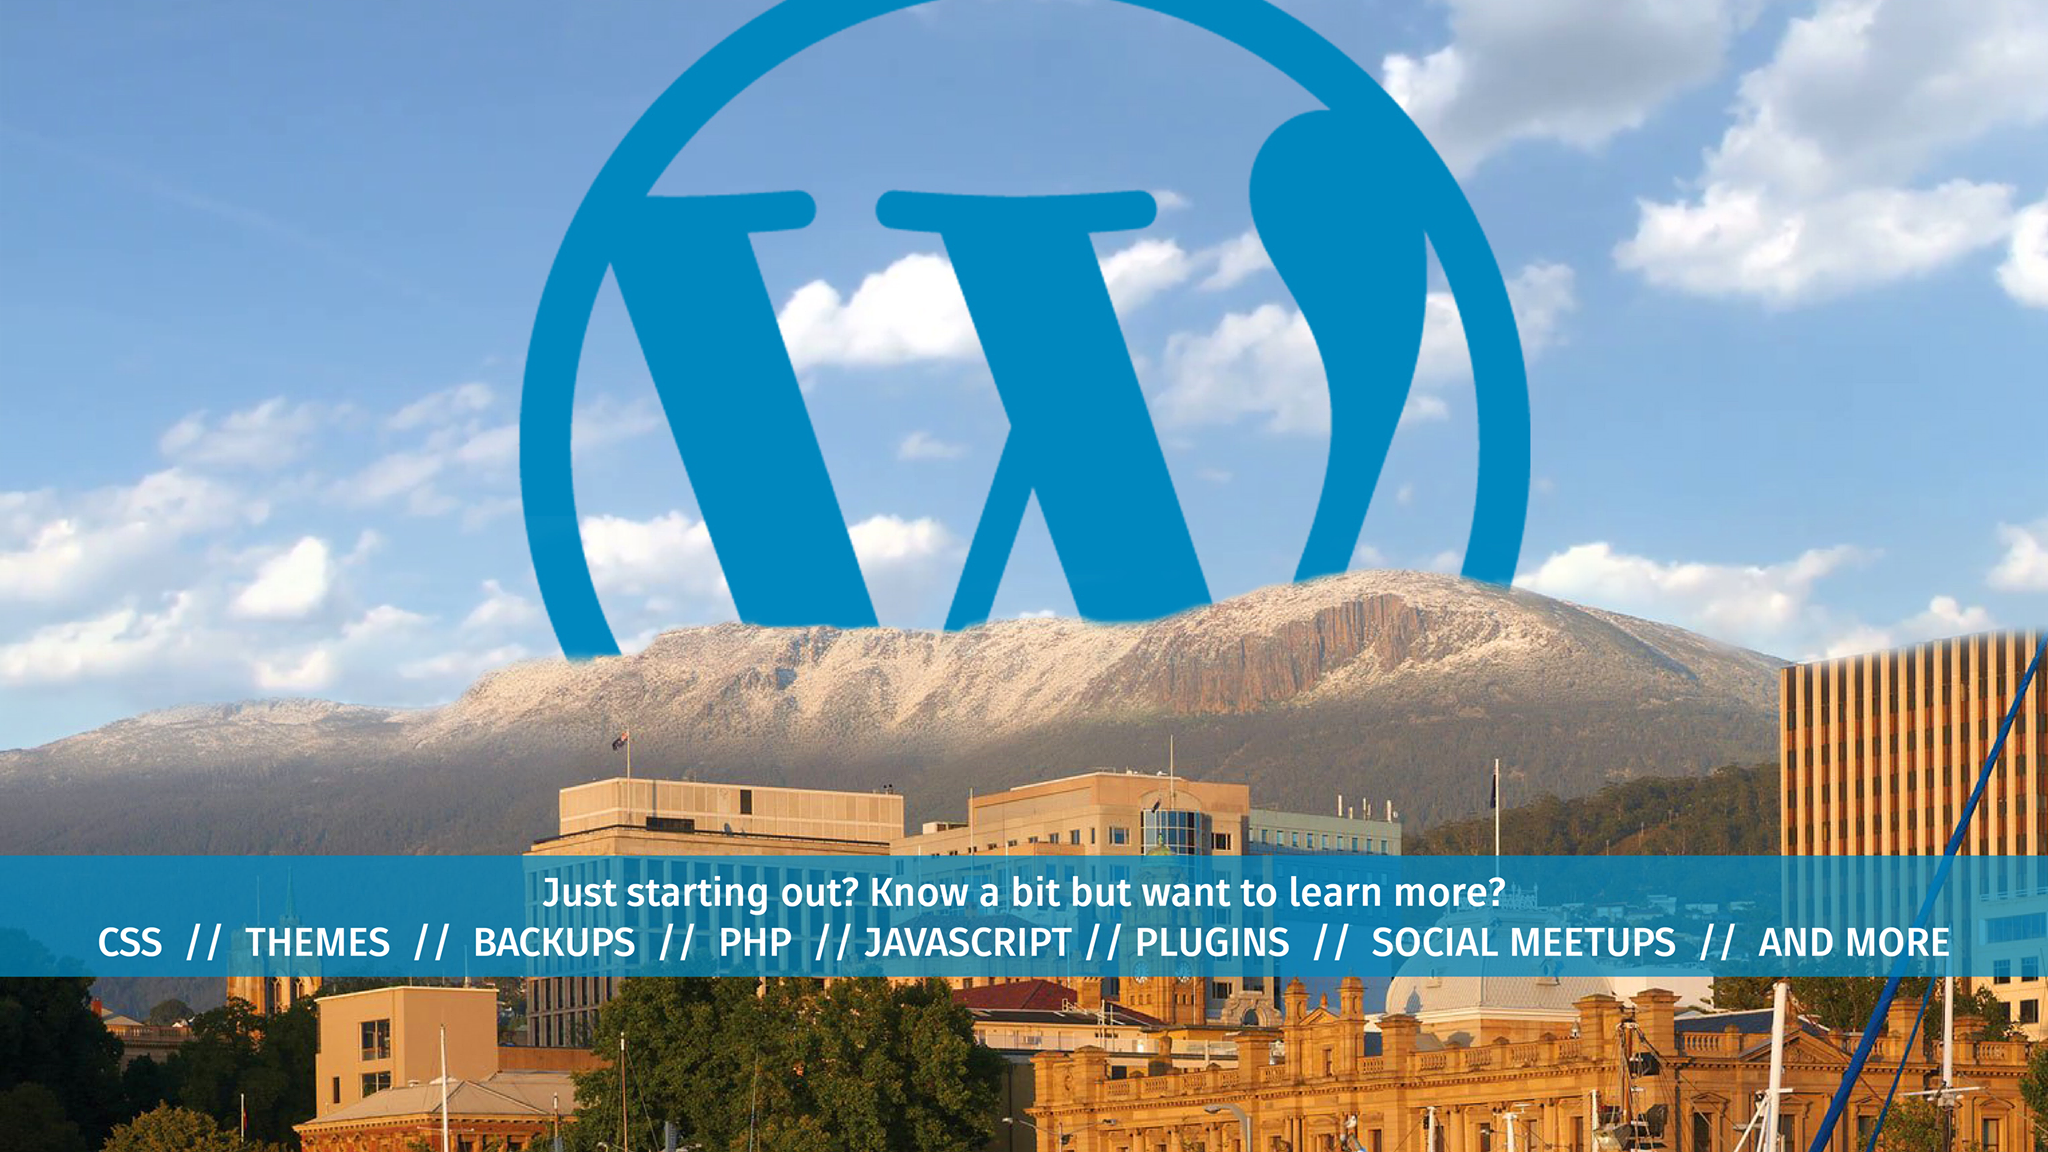 WordPress Hobart